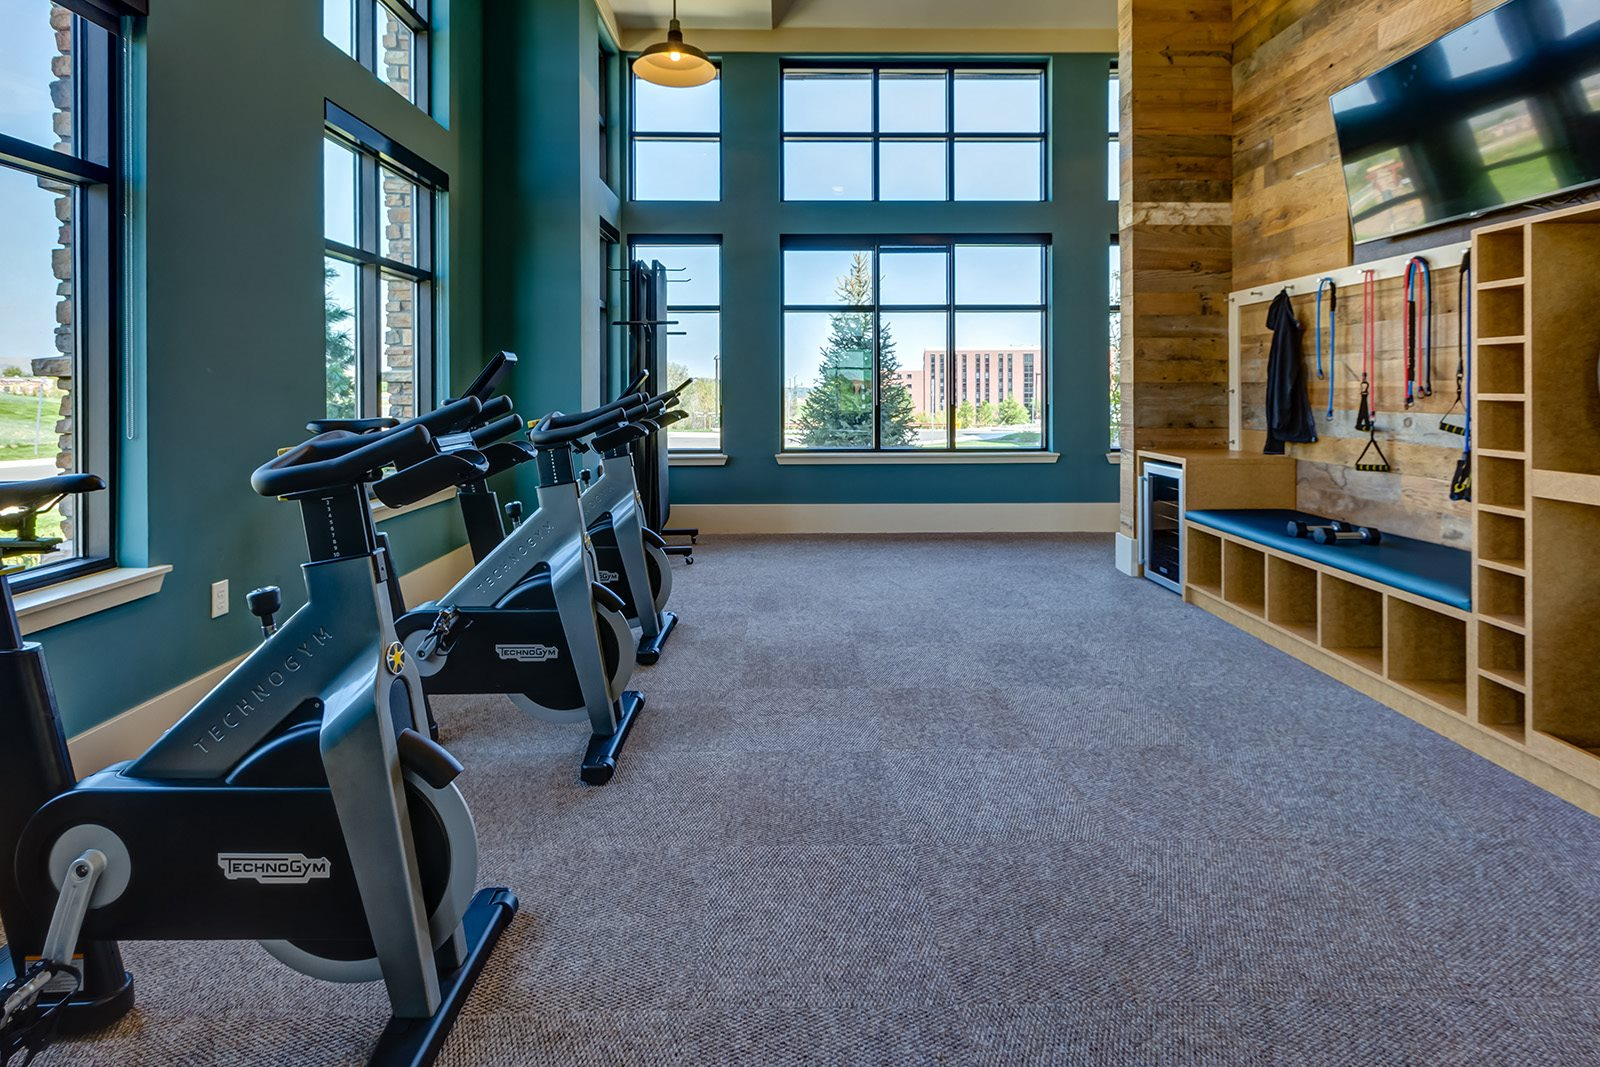 Spin bikes at Windsor at Pinehurst, CO, 80235